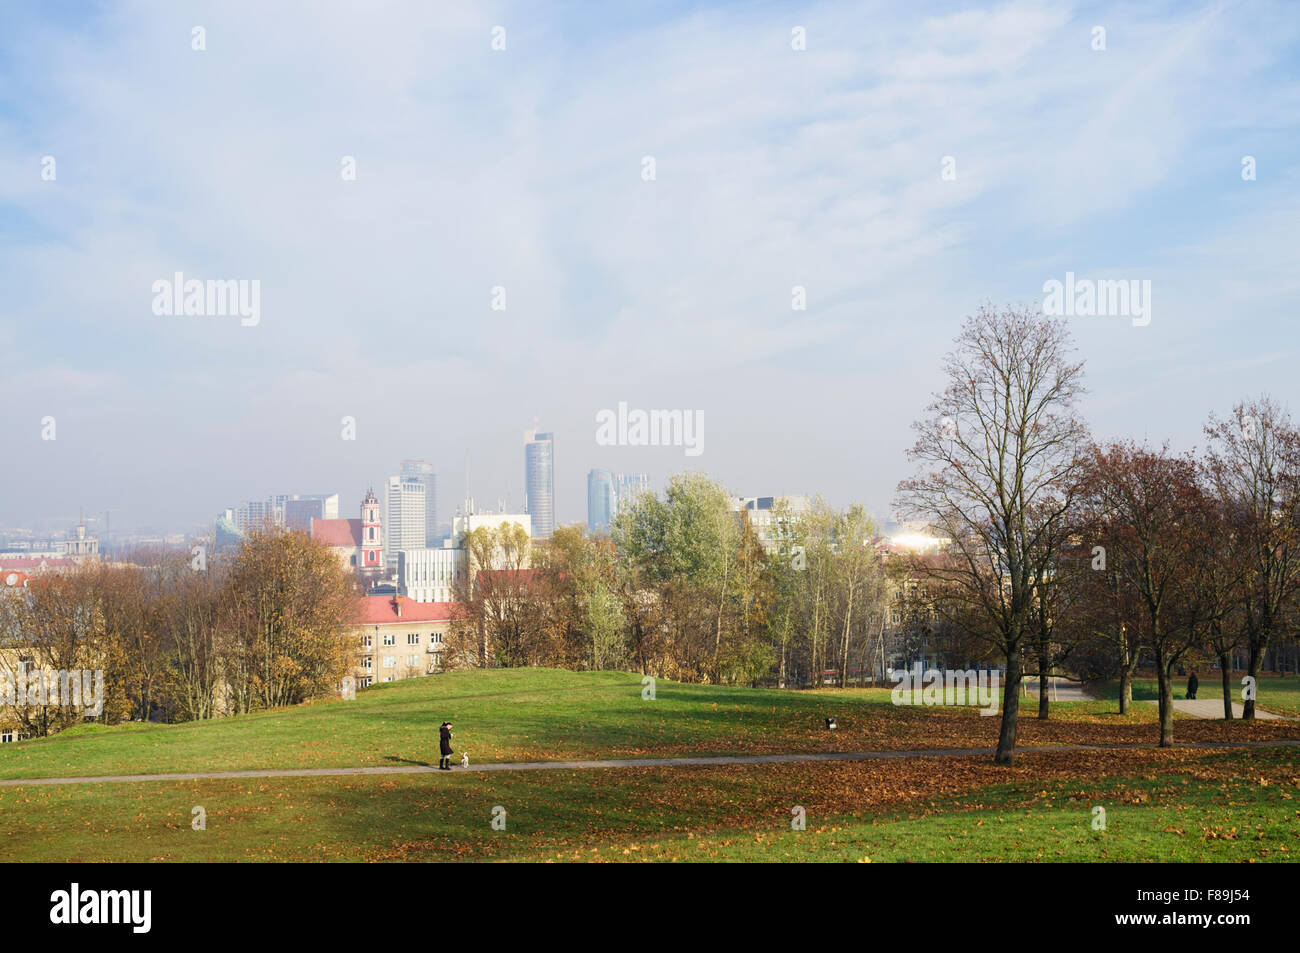 Overview of Vilnius from Tauras Hill, Vilnius, Lithuania, Europe - Stock Image